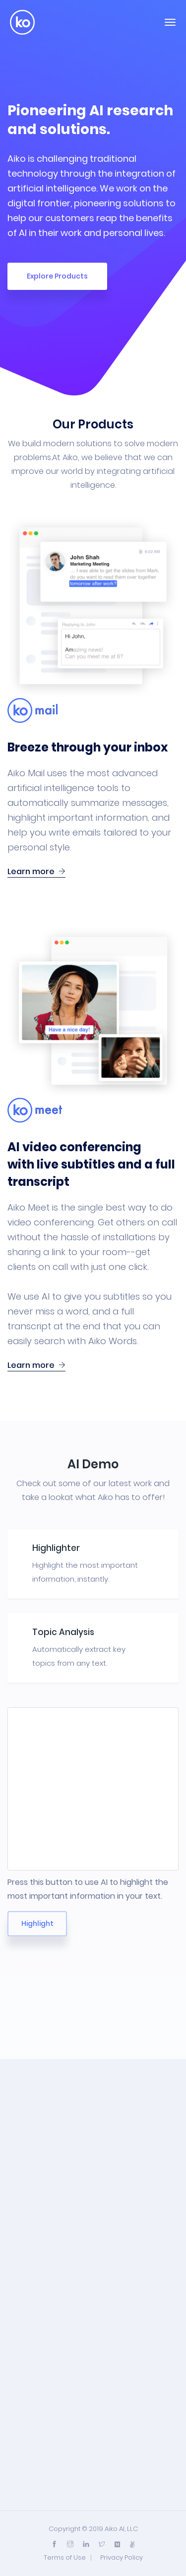 Example of Design for Uncategorized, Mobile Landing Page by helloaiko.com | Mobile Landing Page Design